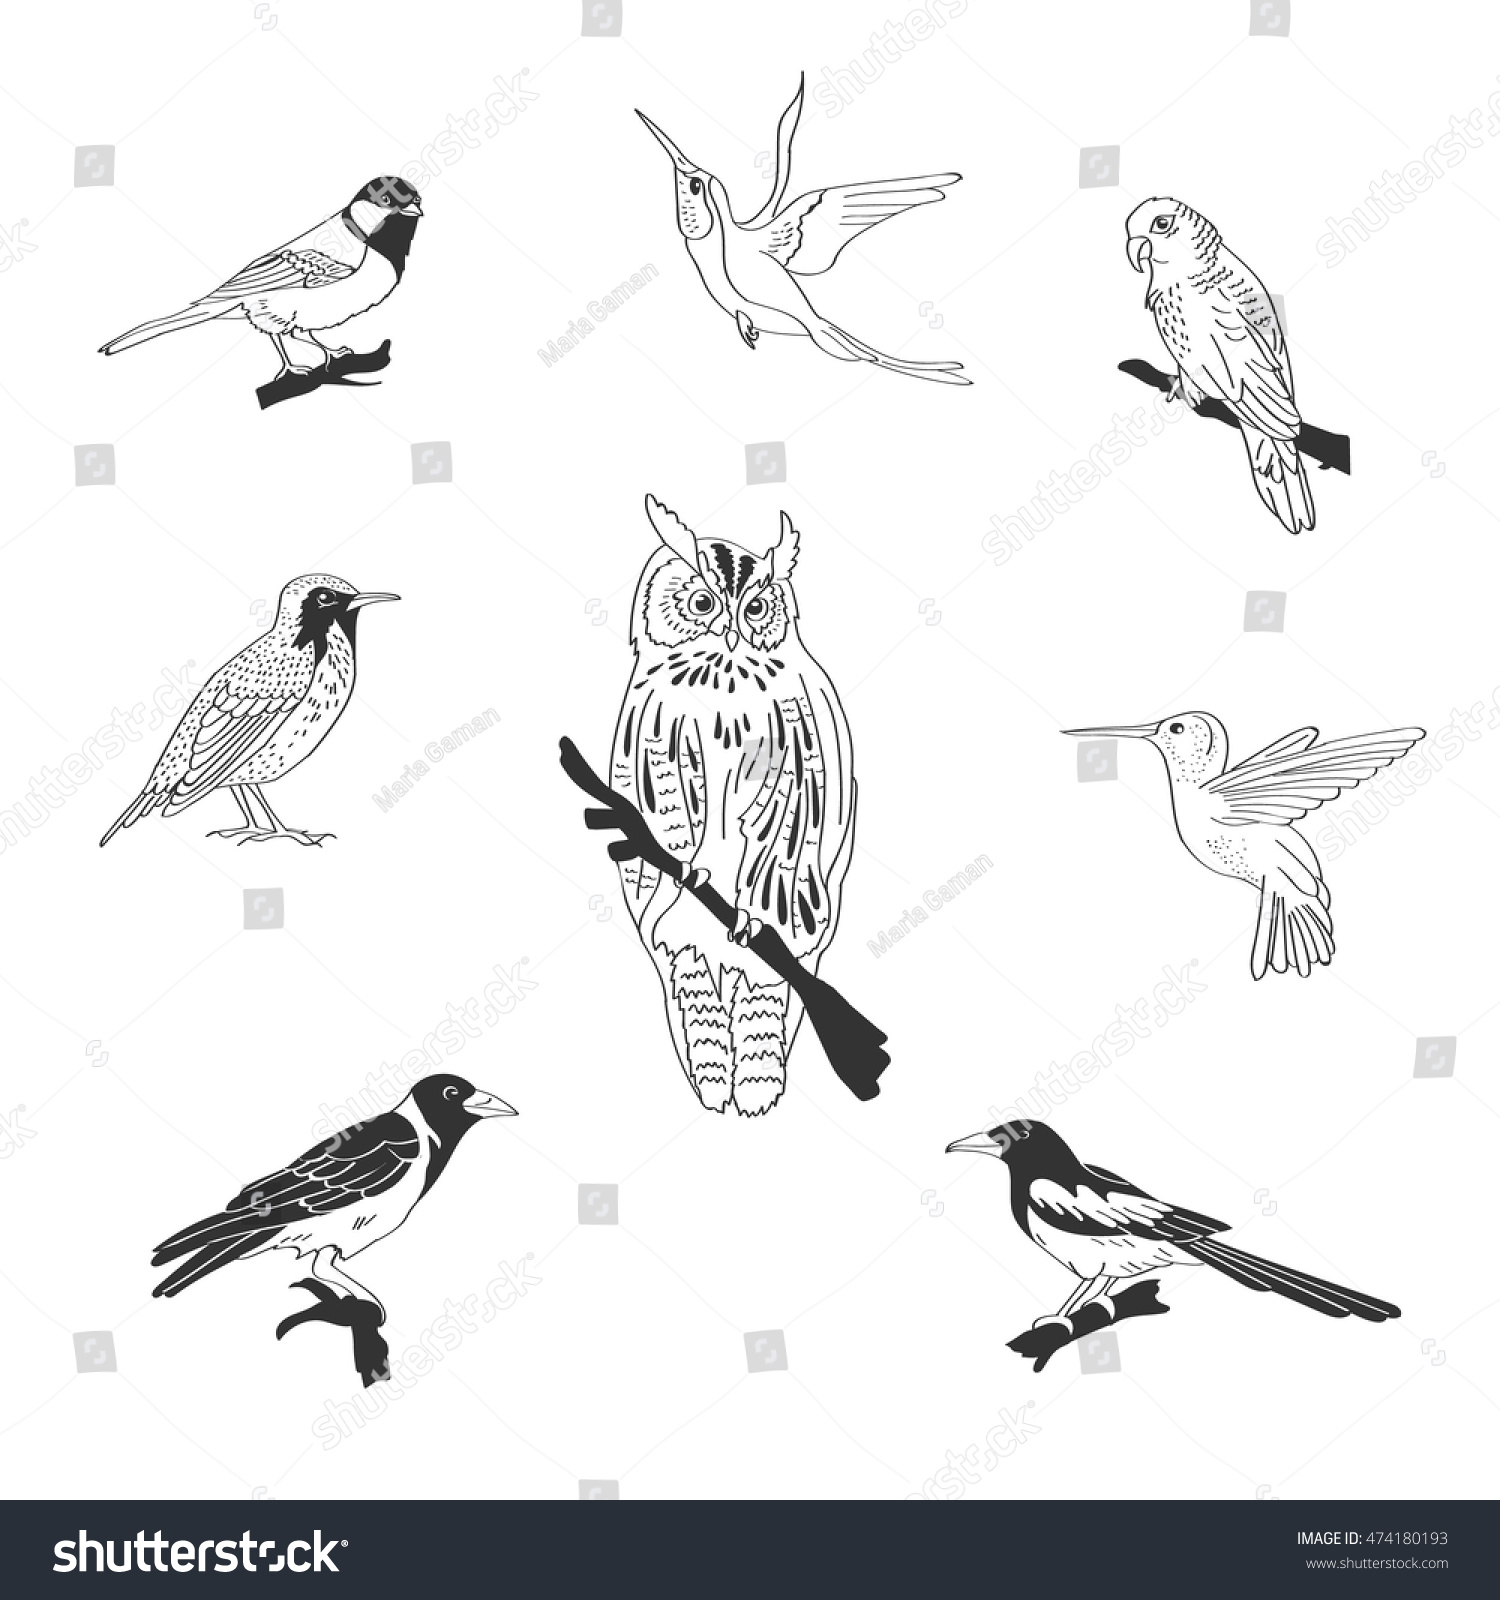 Set of sketches of flying swallows stock vector illustration -  Vectors Illustrations Footage Music Set Of Wood Domestic And Exotic Birds Flying Animals Black White Contours Sketch